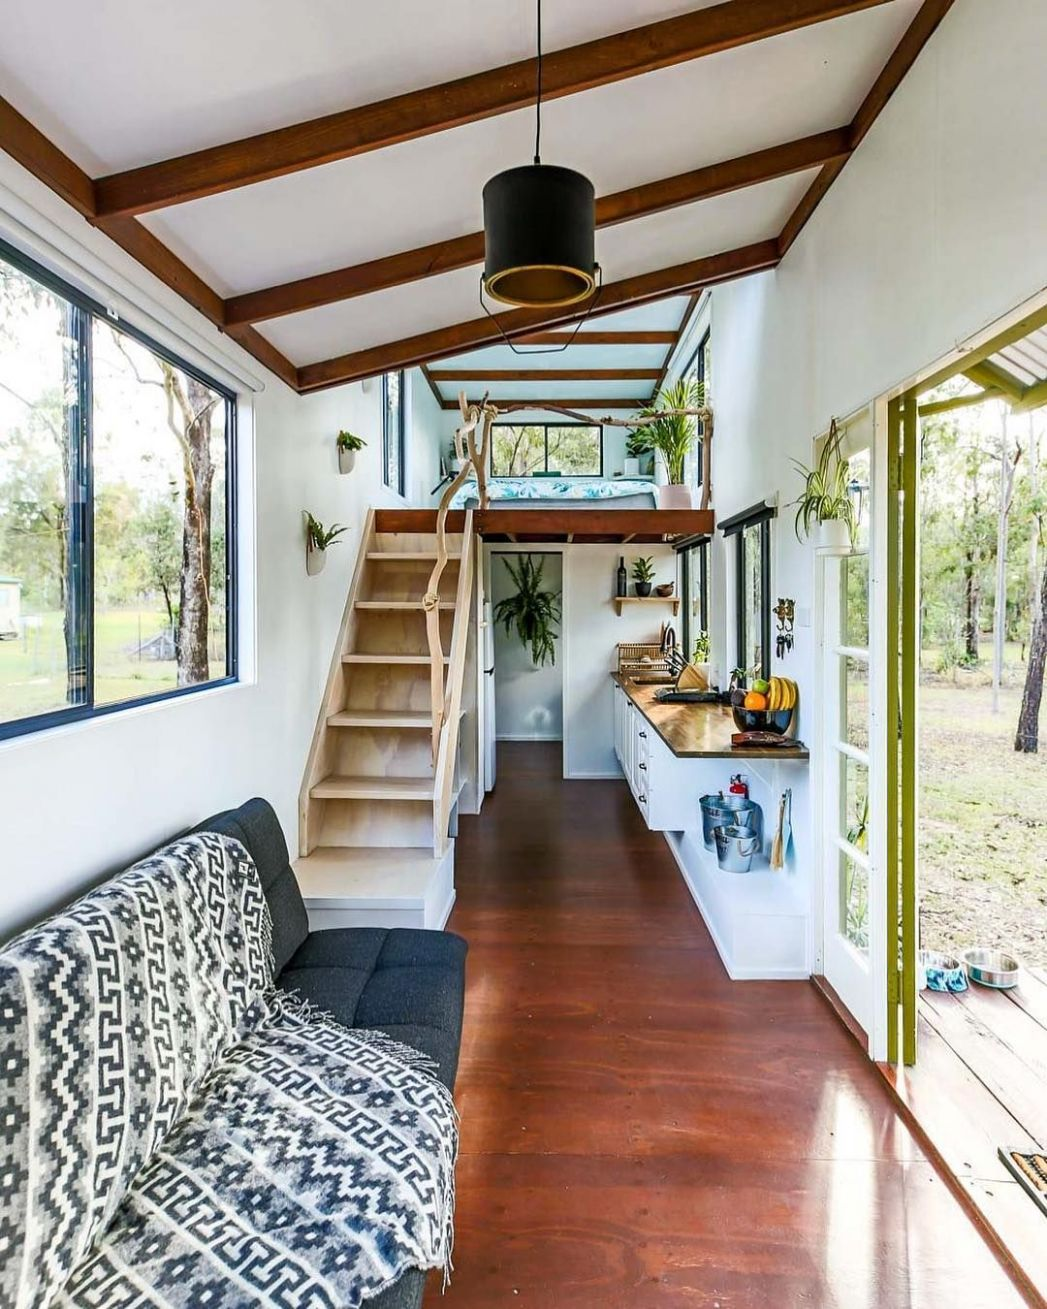 New video live today of this stunning eco tiny house in Australia ..